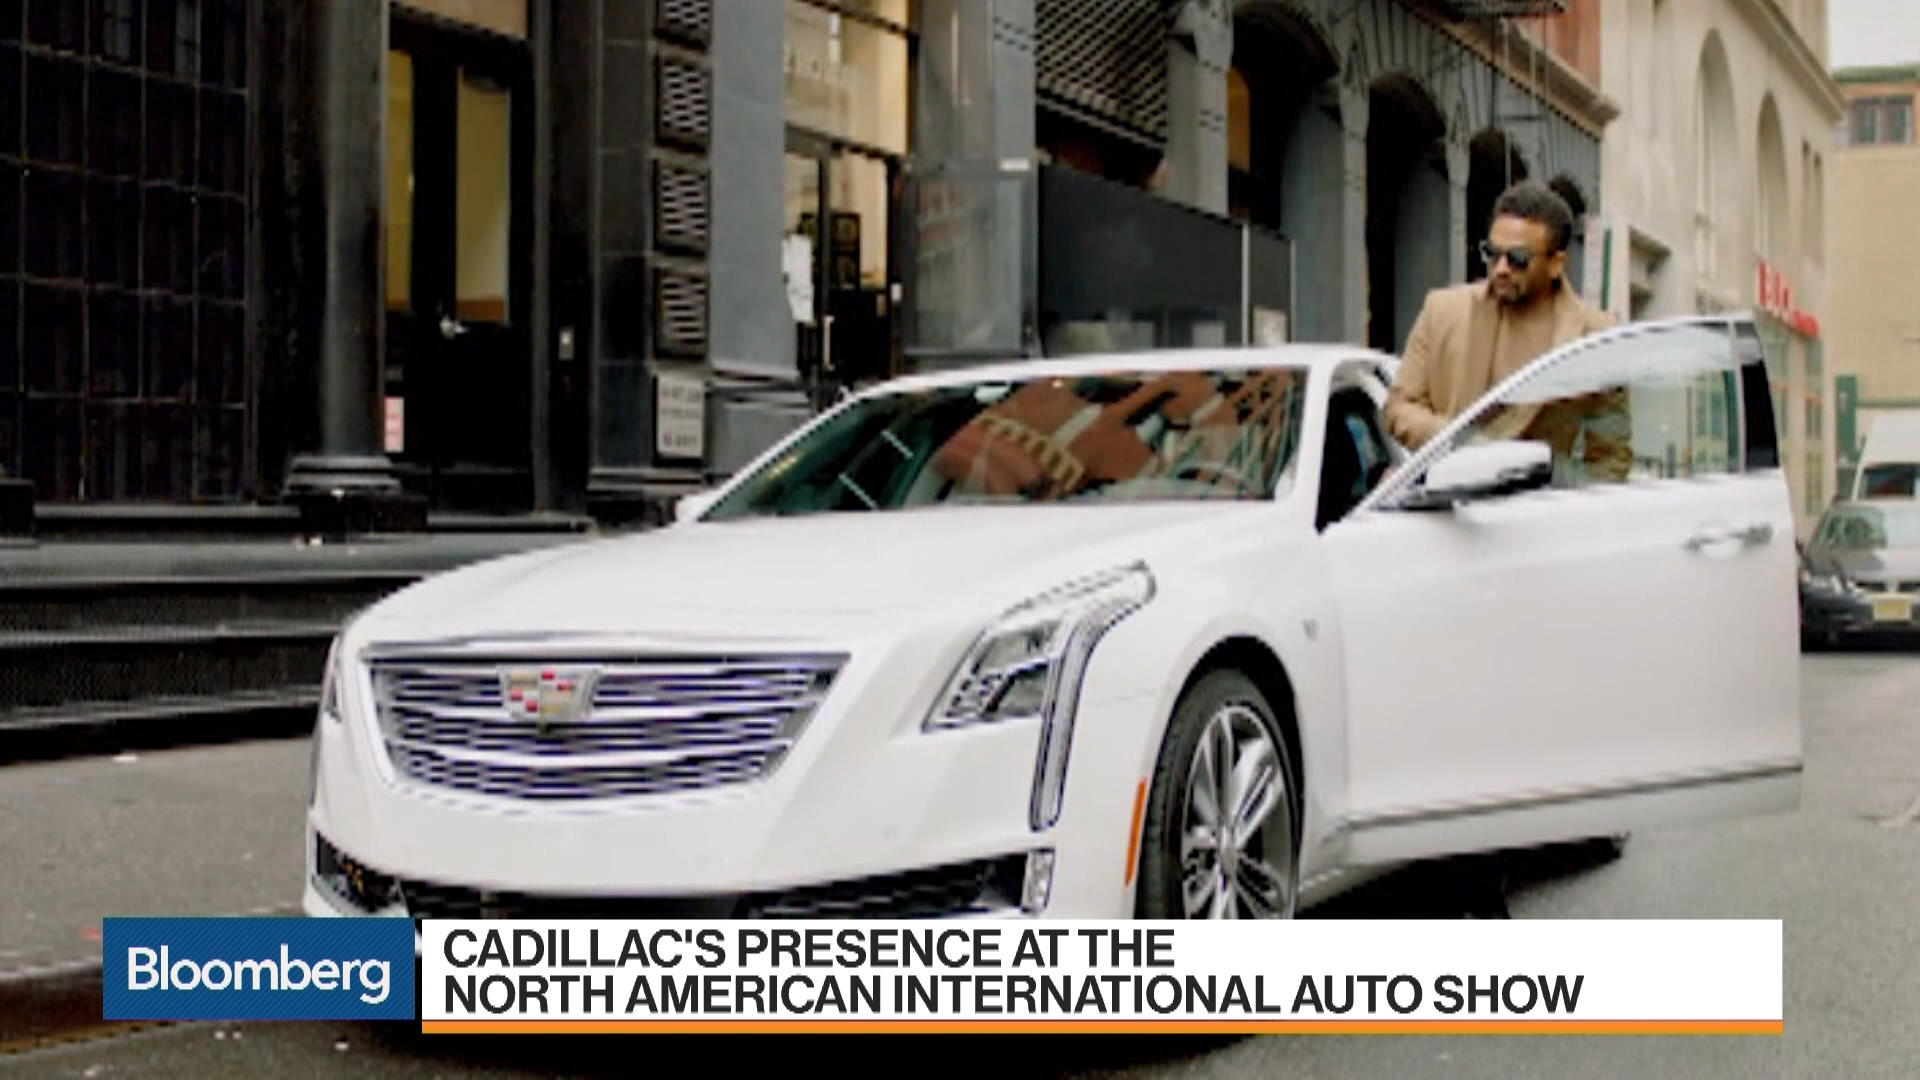 Cadillac to Sell Over 200 000 Vehicles in China in 2018 – Bloomberg